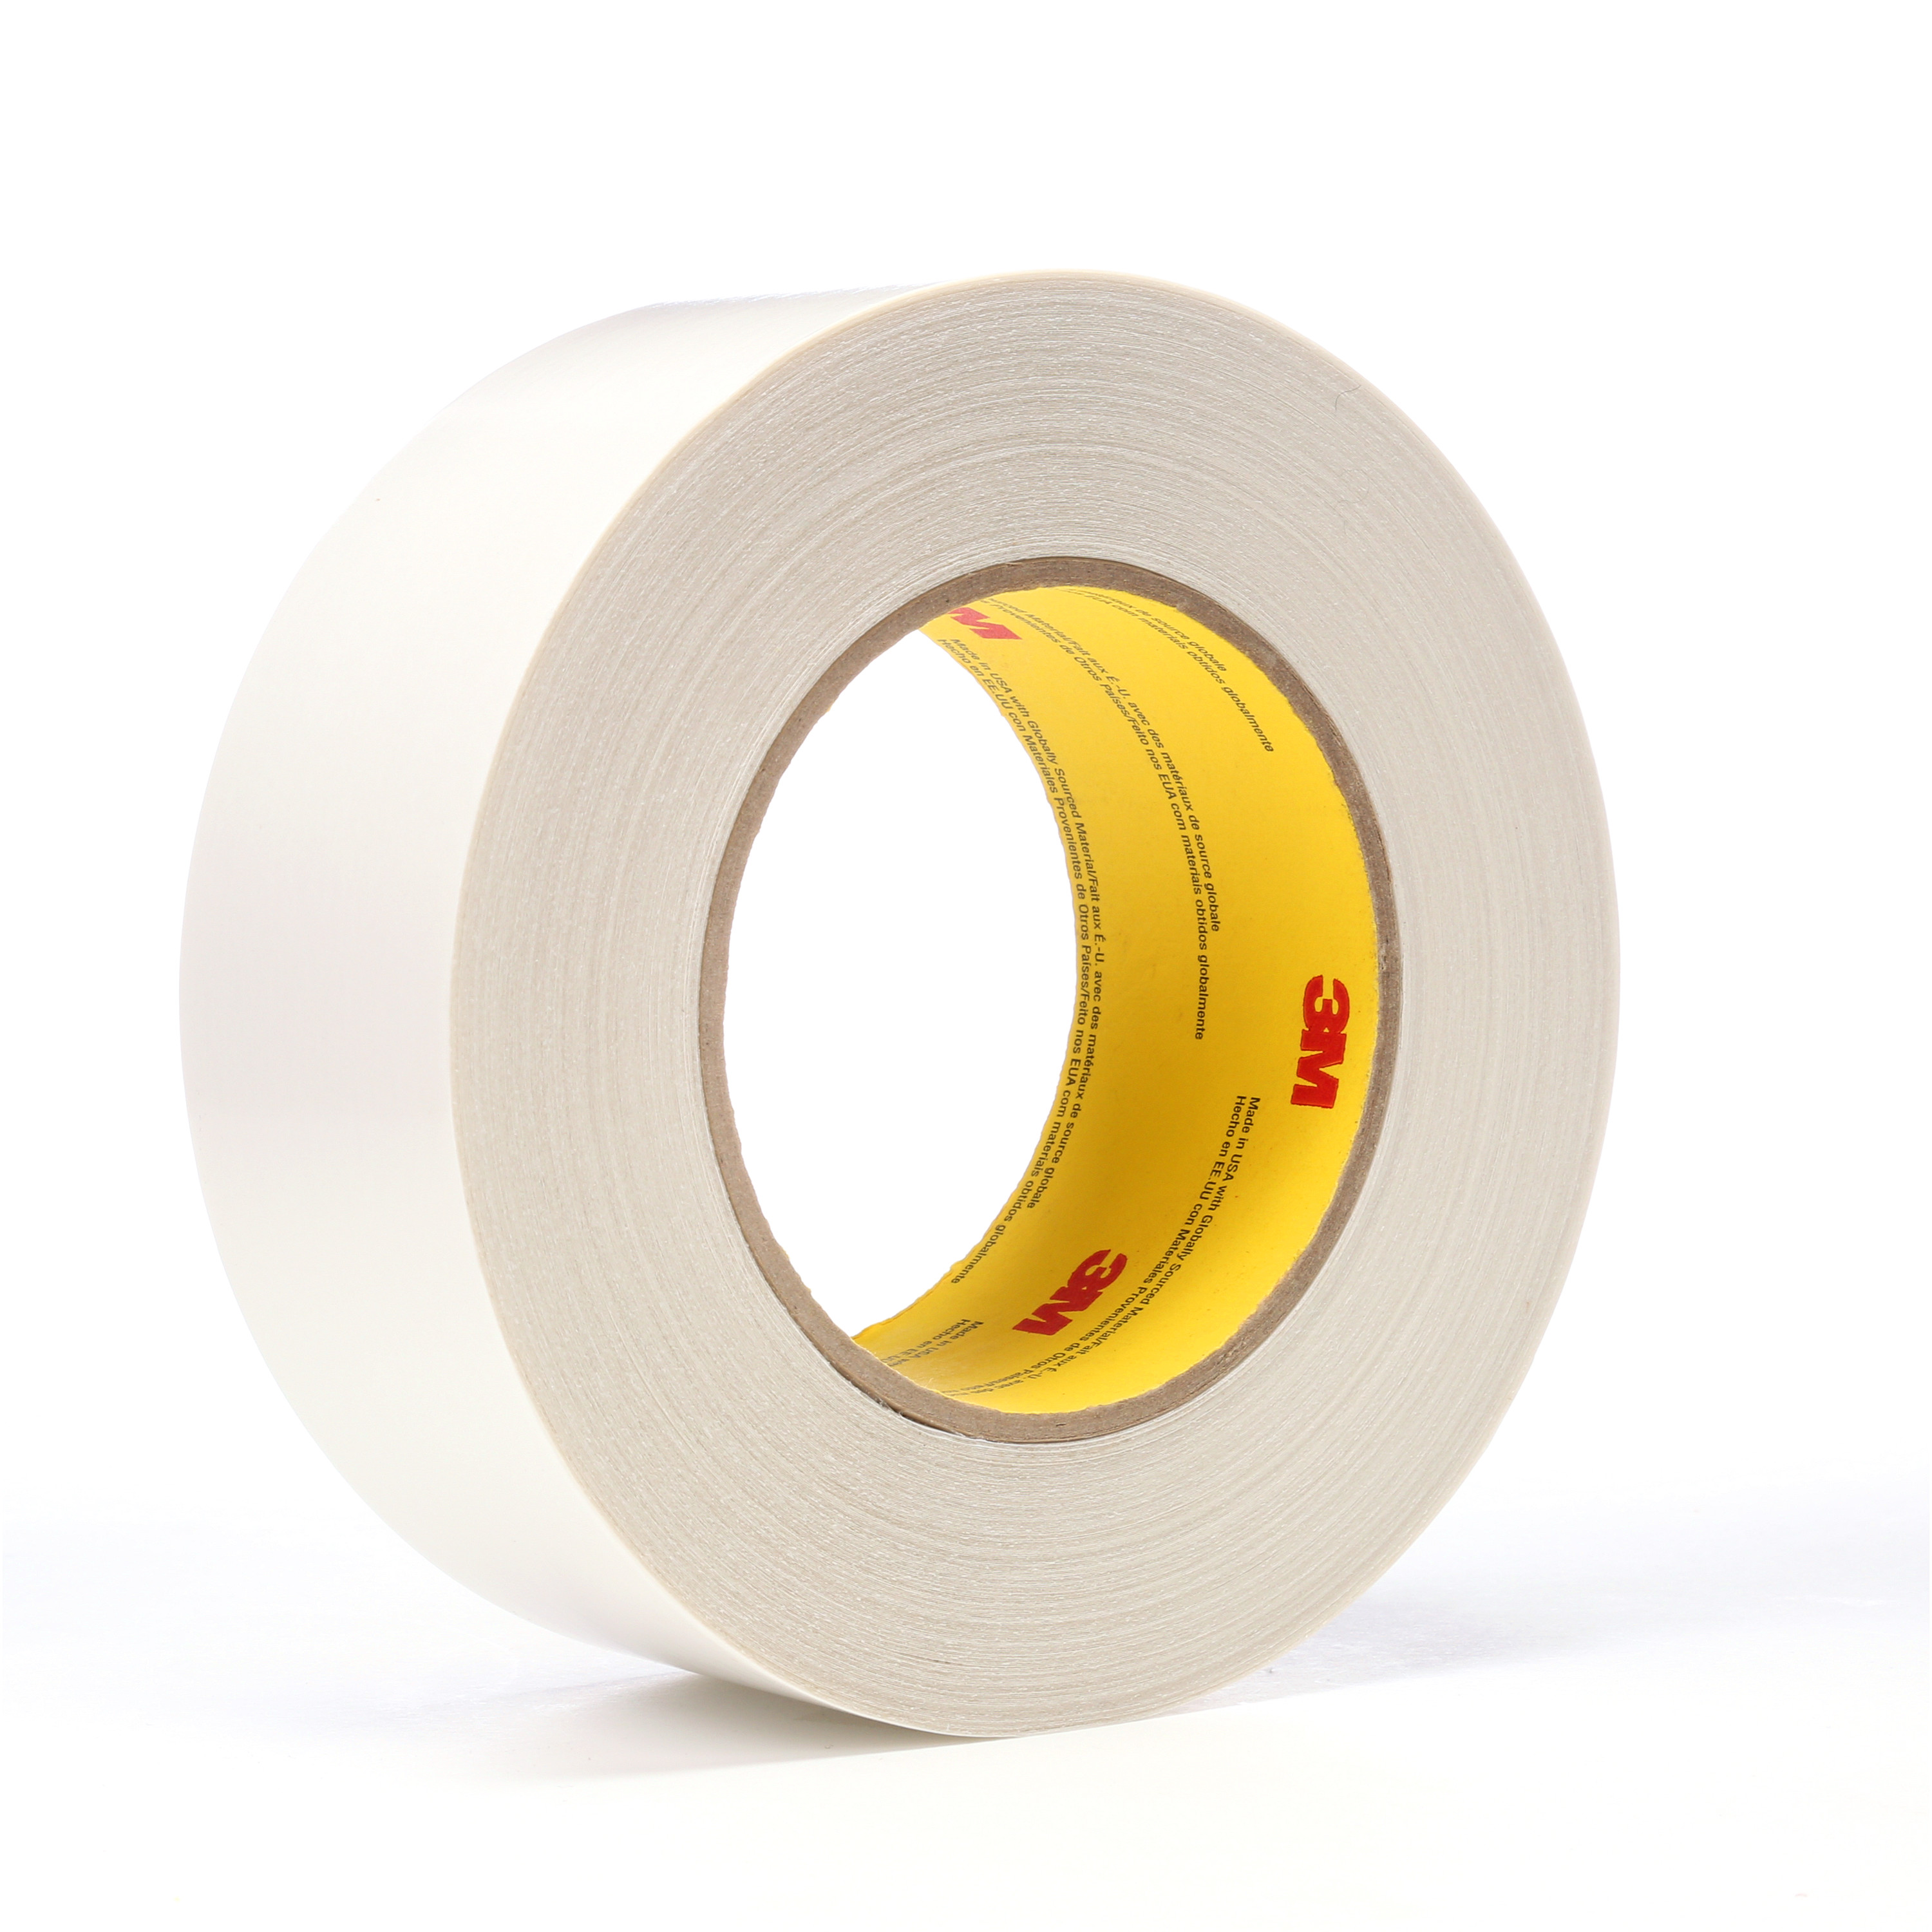 3M™ Double Coated Tape 9737, Clear, 48 mm x 55 m, 3.5 mil, 24 rolls per case